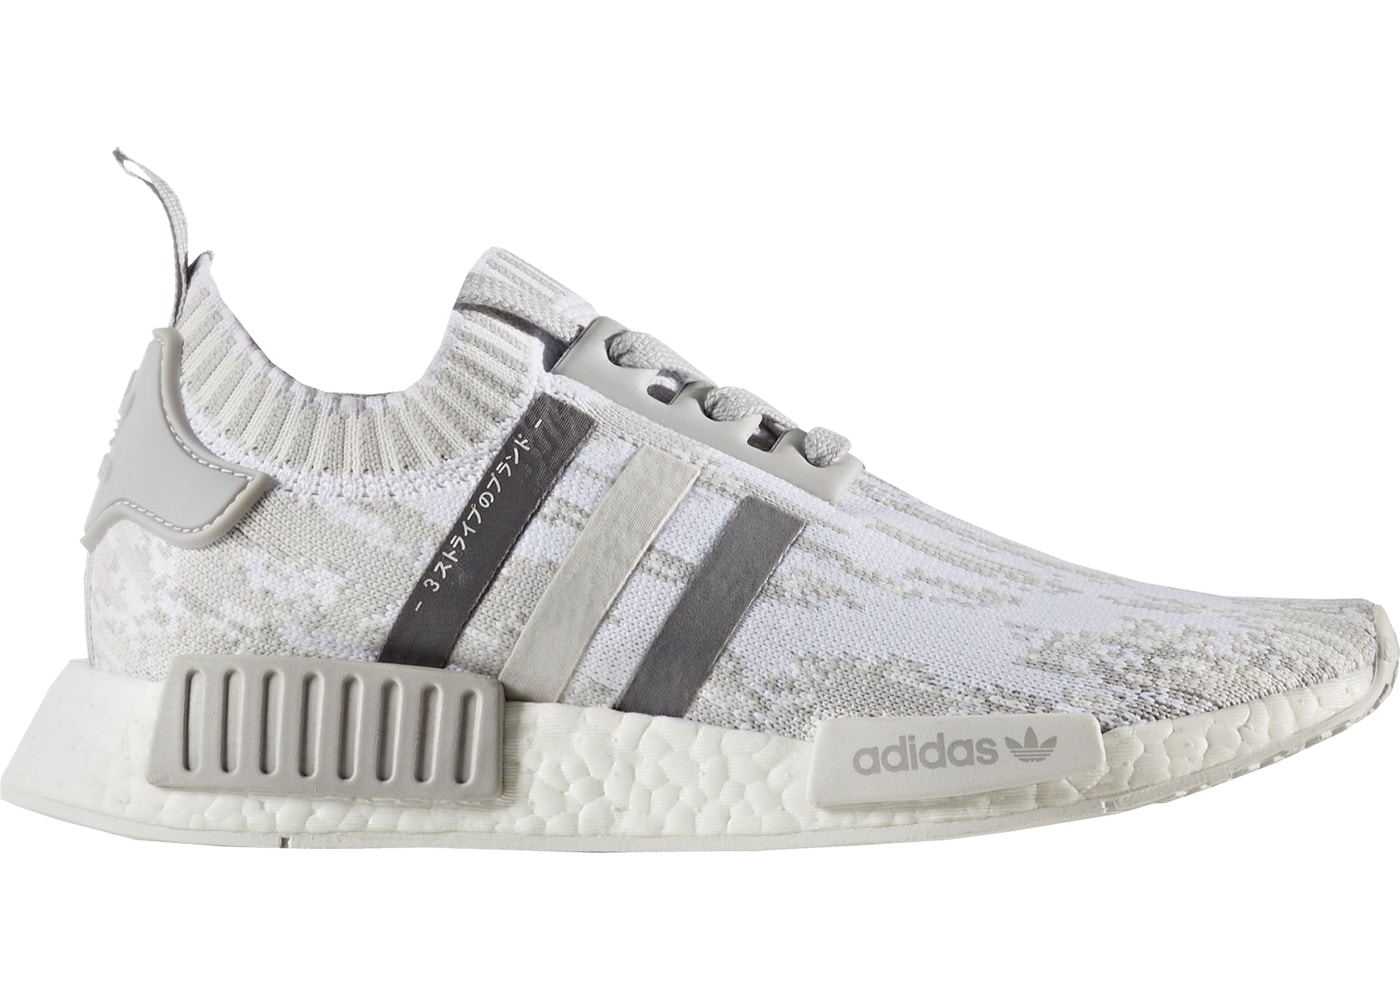 new product 53e30 b28d2 adidas NMD R1 Glitch Camo Grey (W)